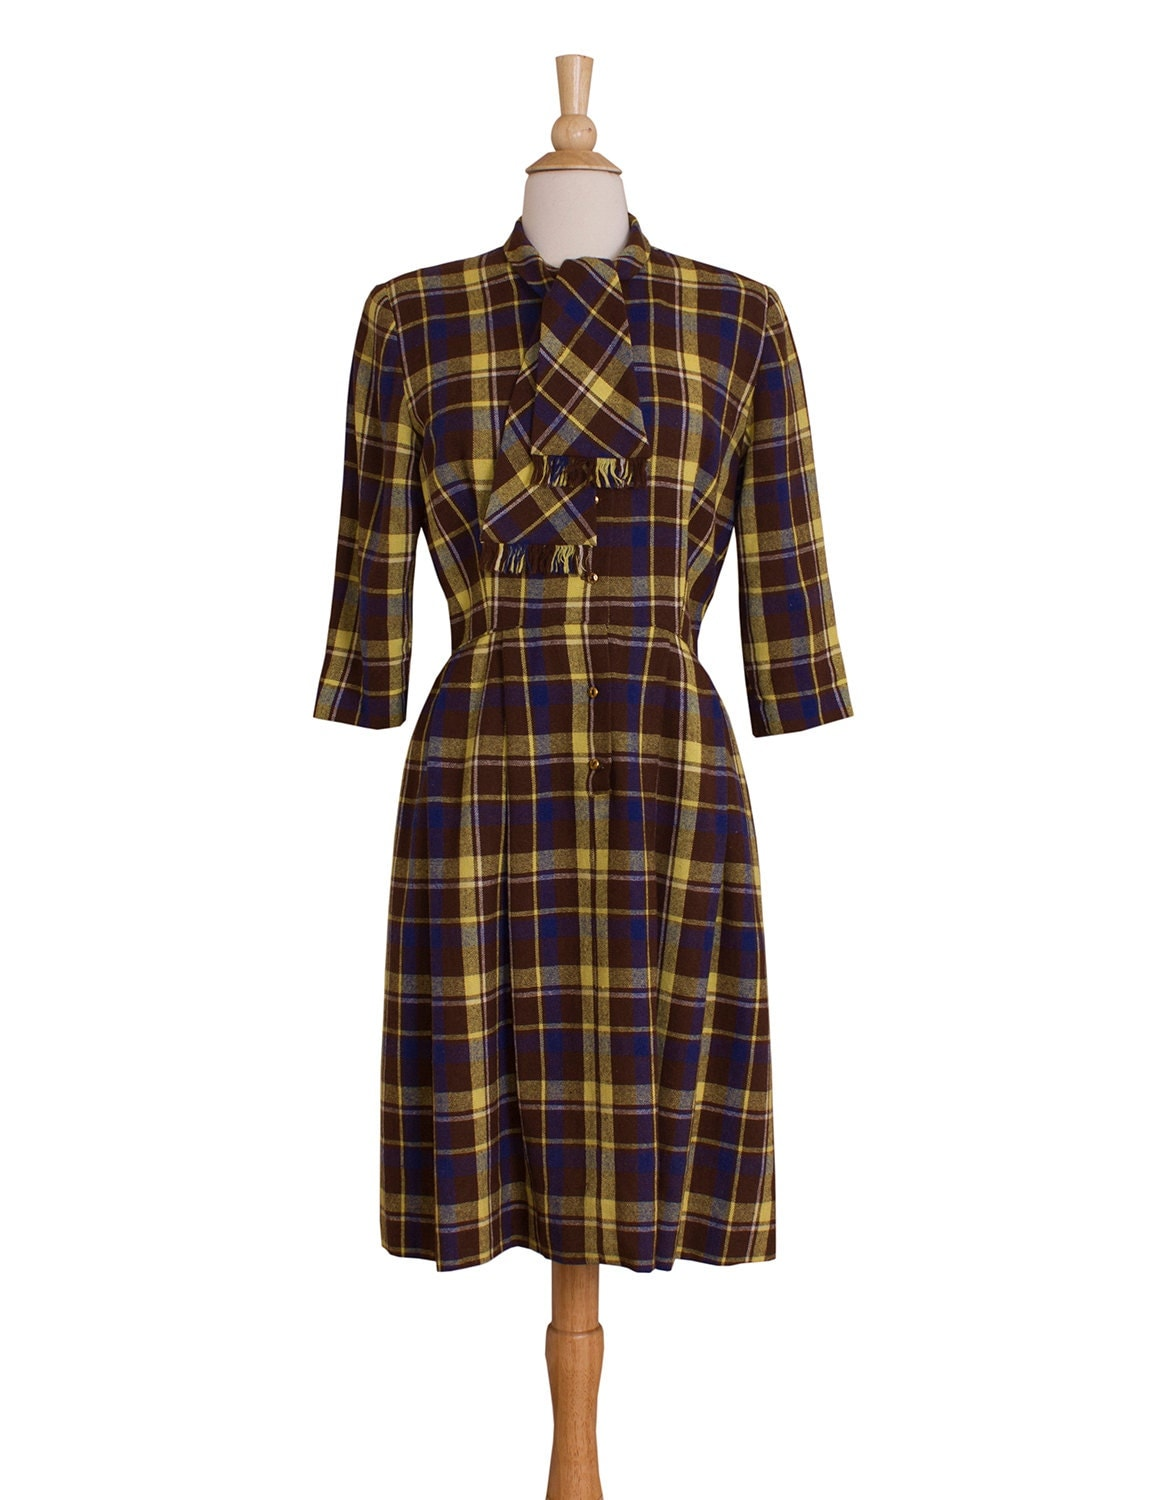 1960s Vintage Brown Blue and Yellow Plaid Day Dress Micentury